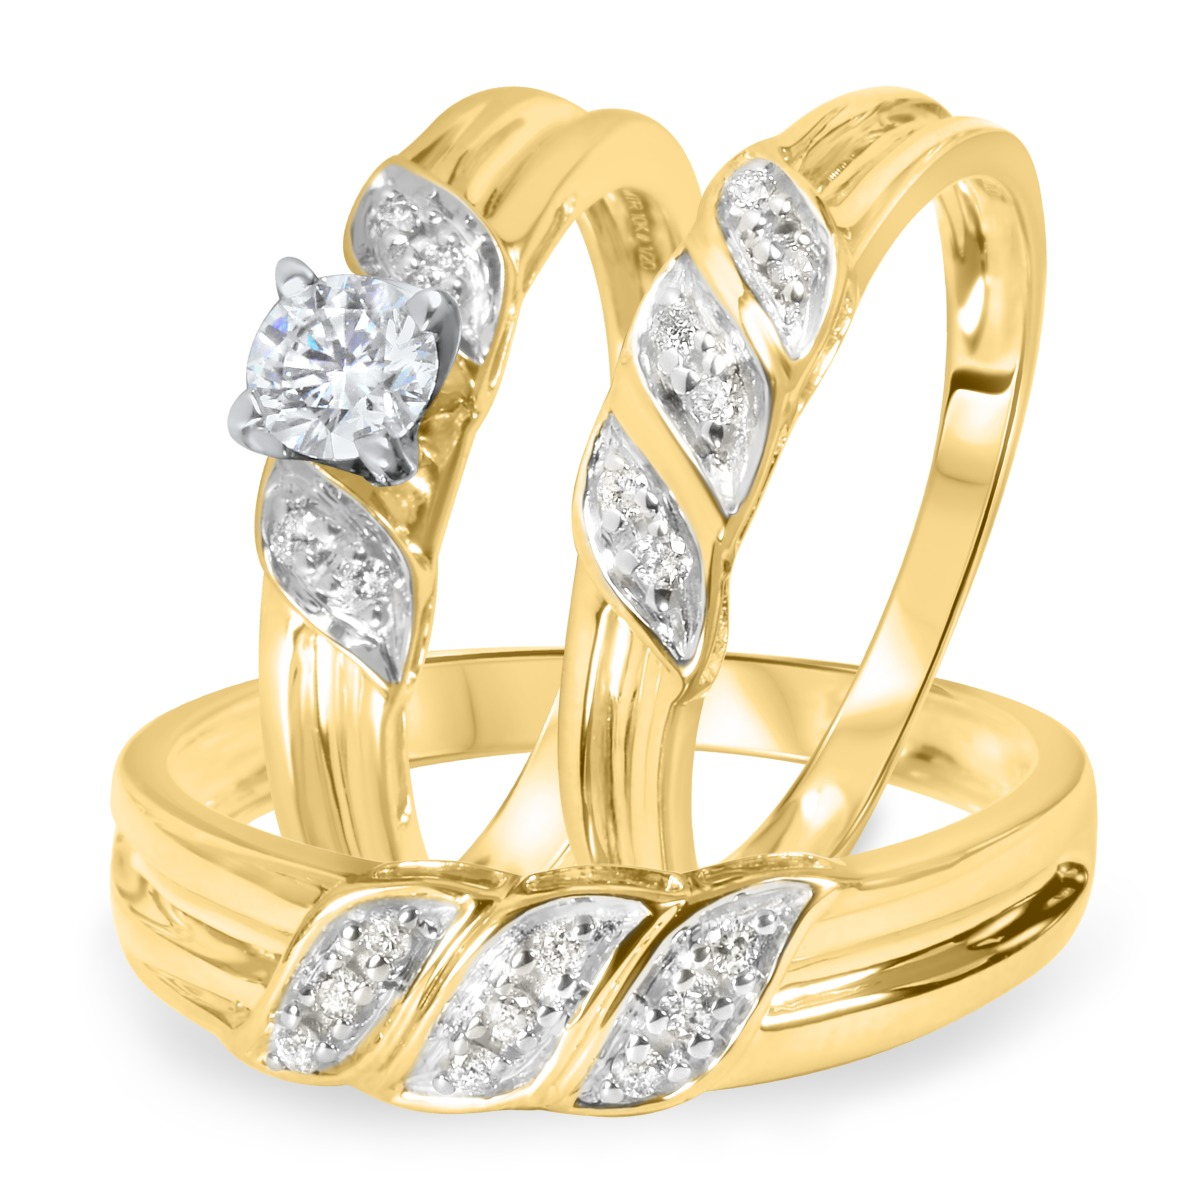 1/2 CT. T.W. Diamond Ladies Engagement Ring, Wedding Band, Men's Wedding Band Matching Set 14K Yellow Gold